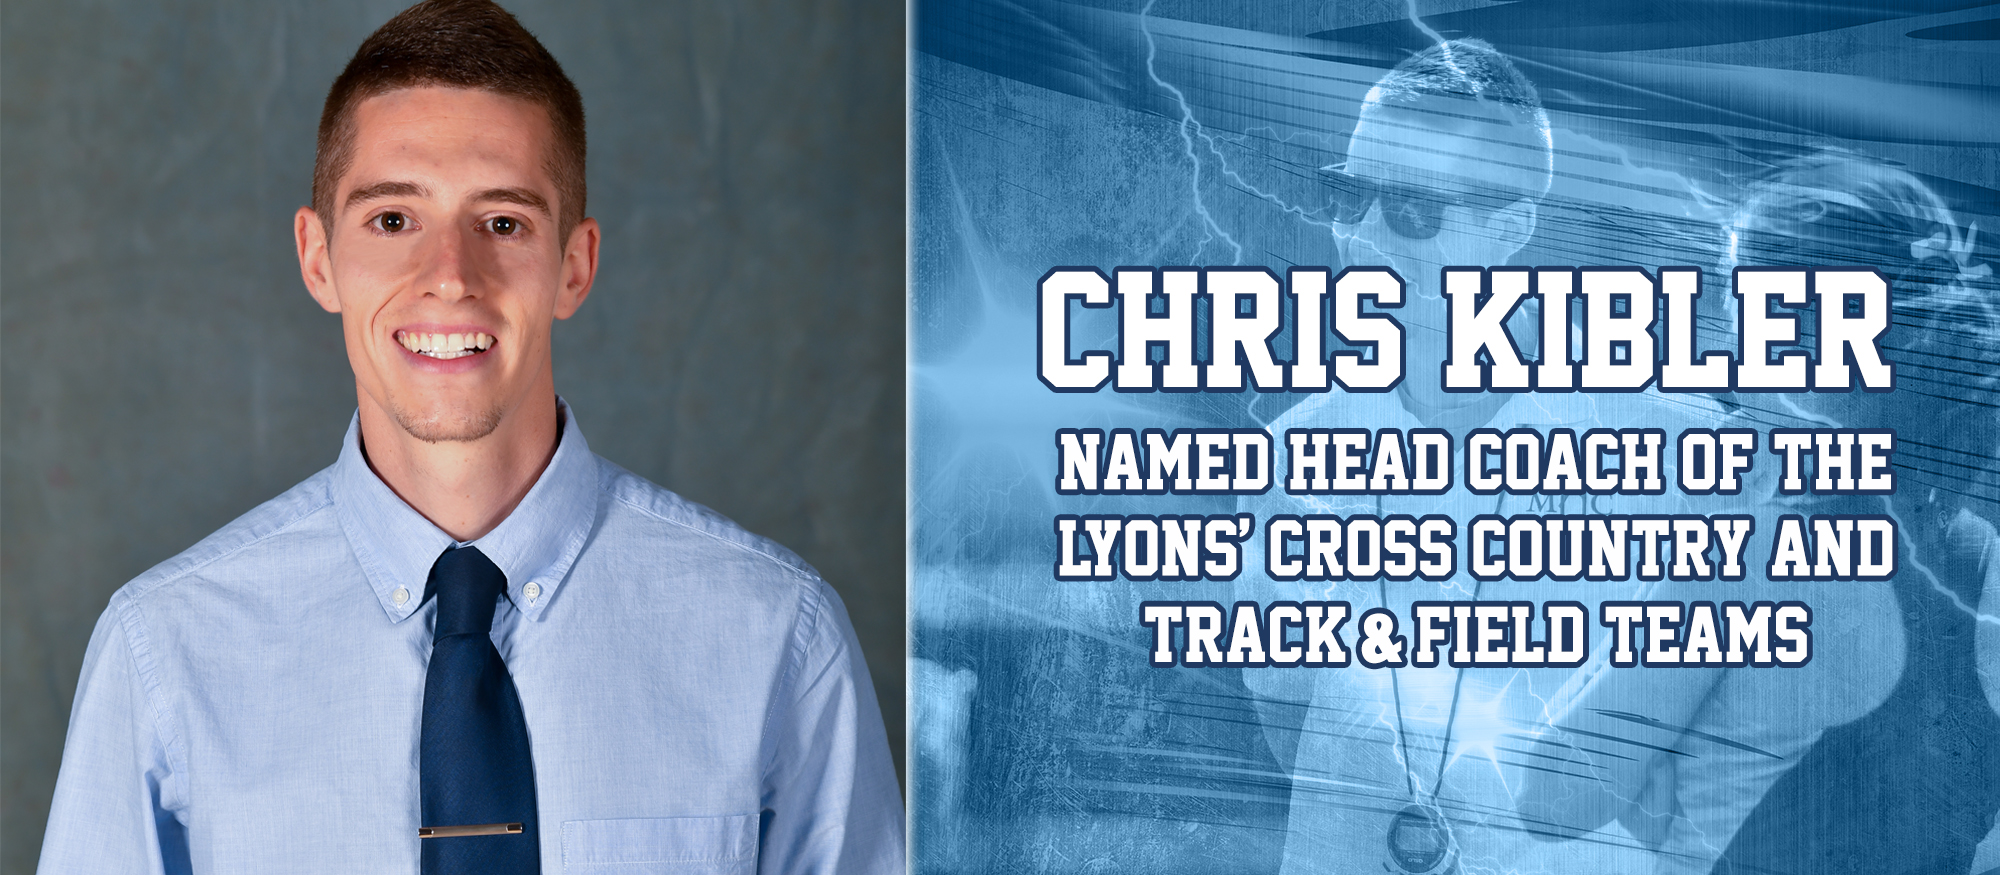 Image announcing Chris Kibler as the Lyons new head indoor and outdoor track & field coach, in addition to head cross country coach.